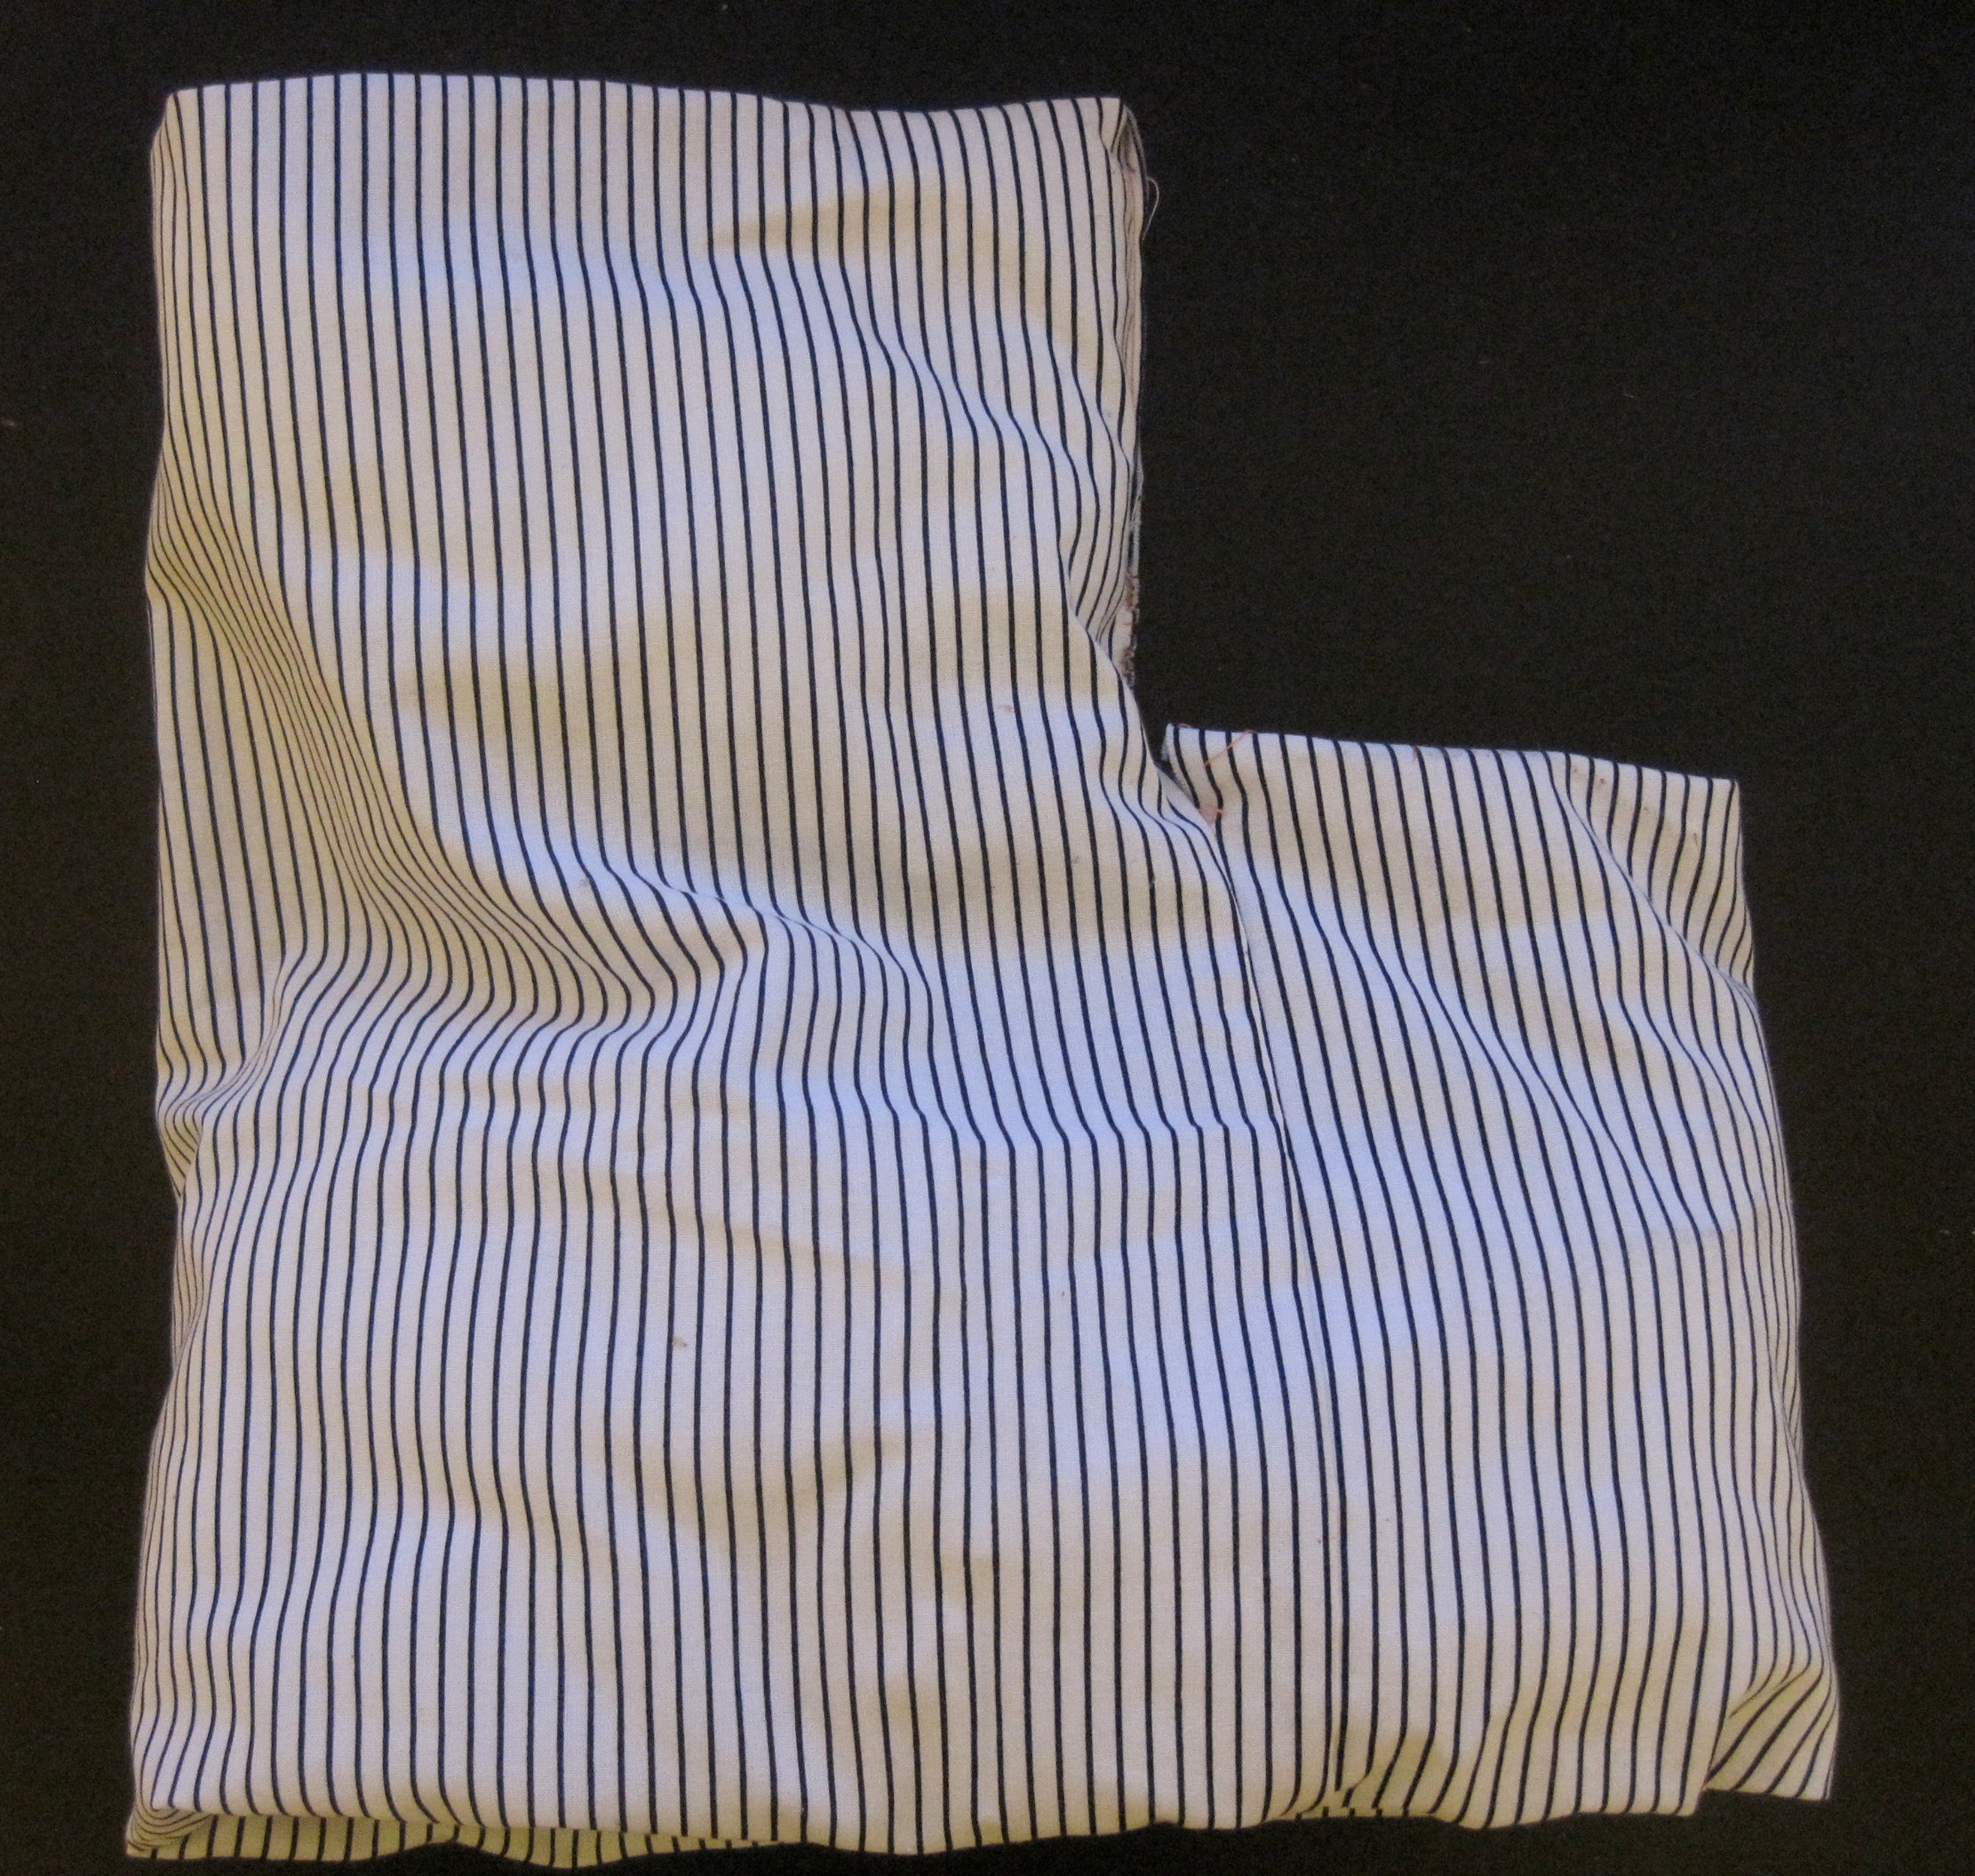 A black and white striped pillow